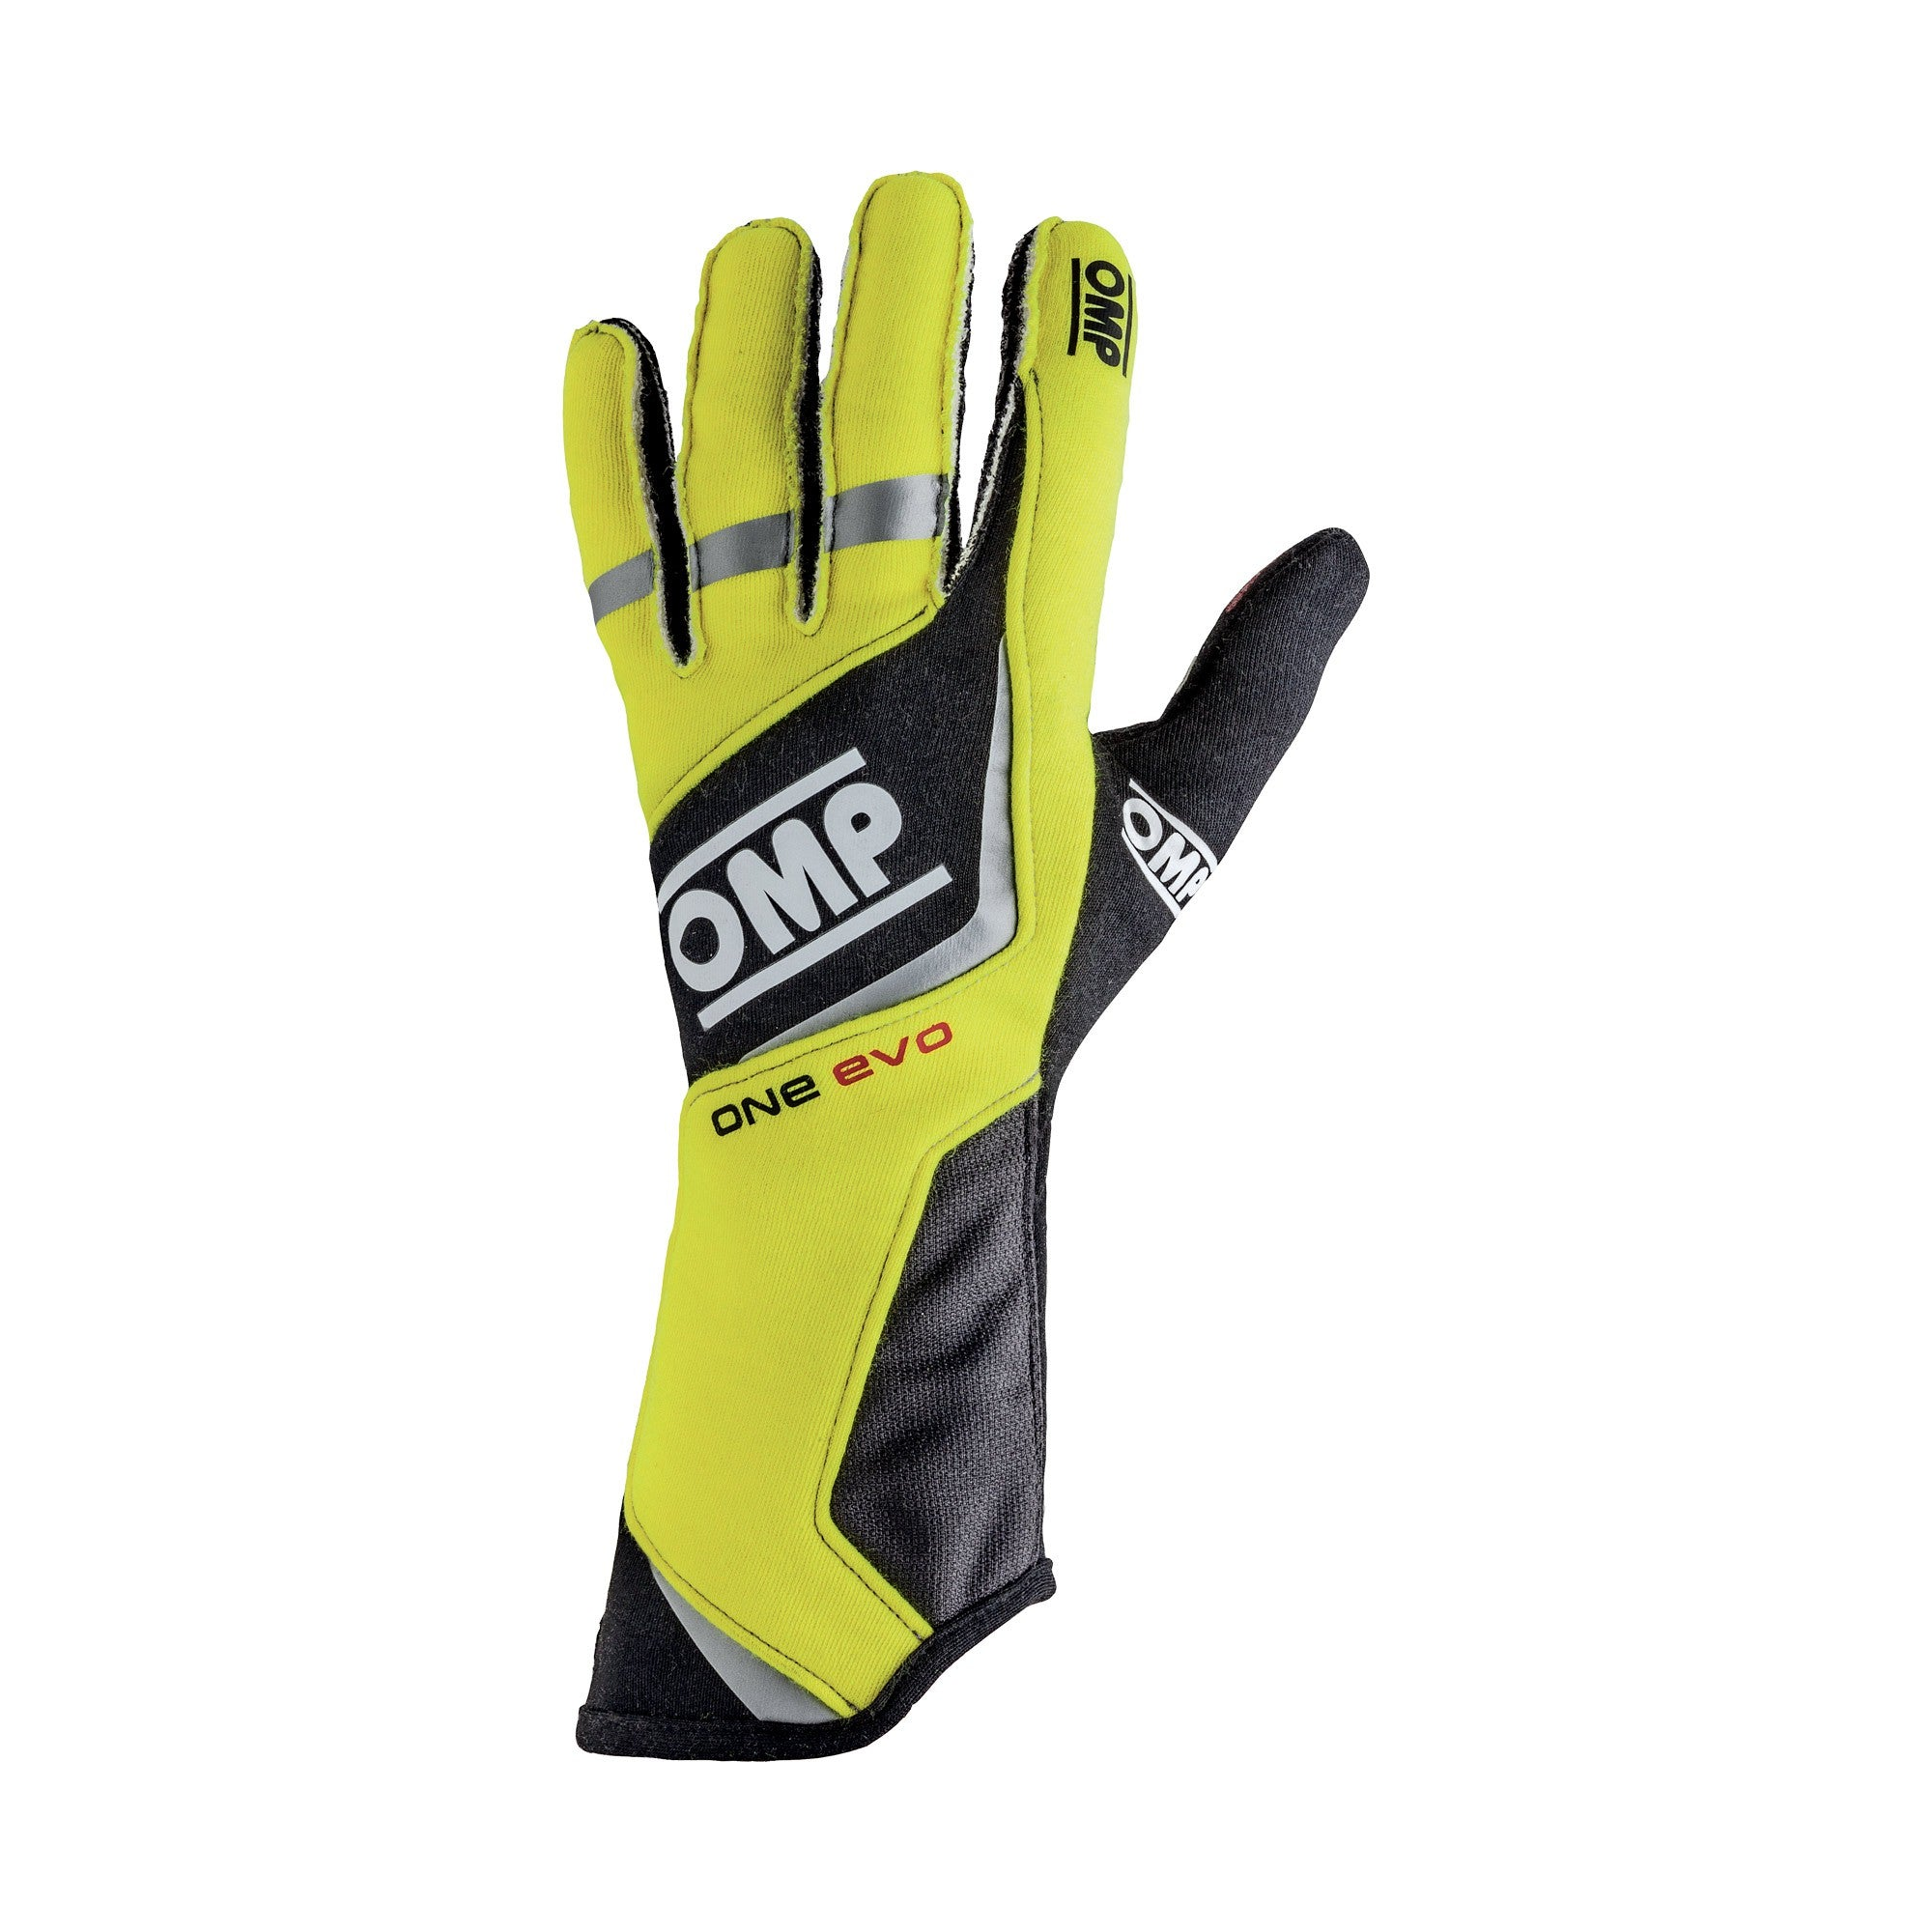 OMP NOMEX RACING GLOVES ONE-EVO